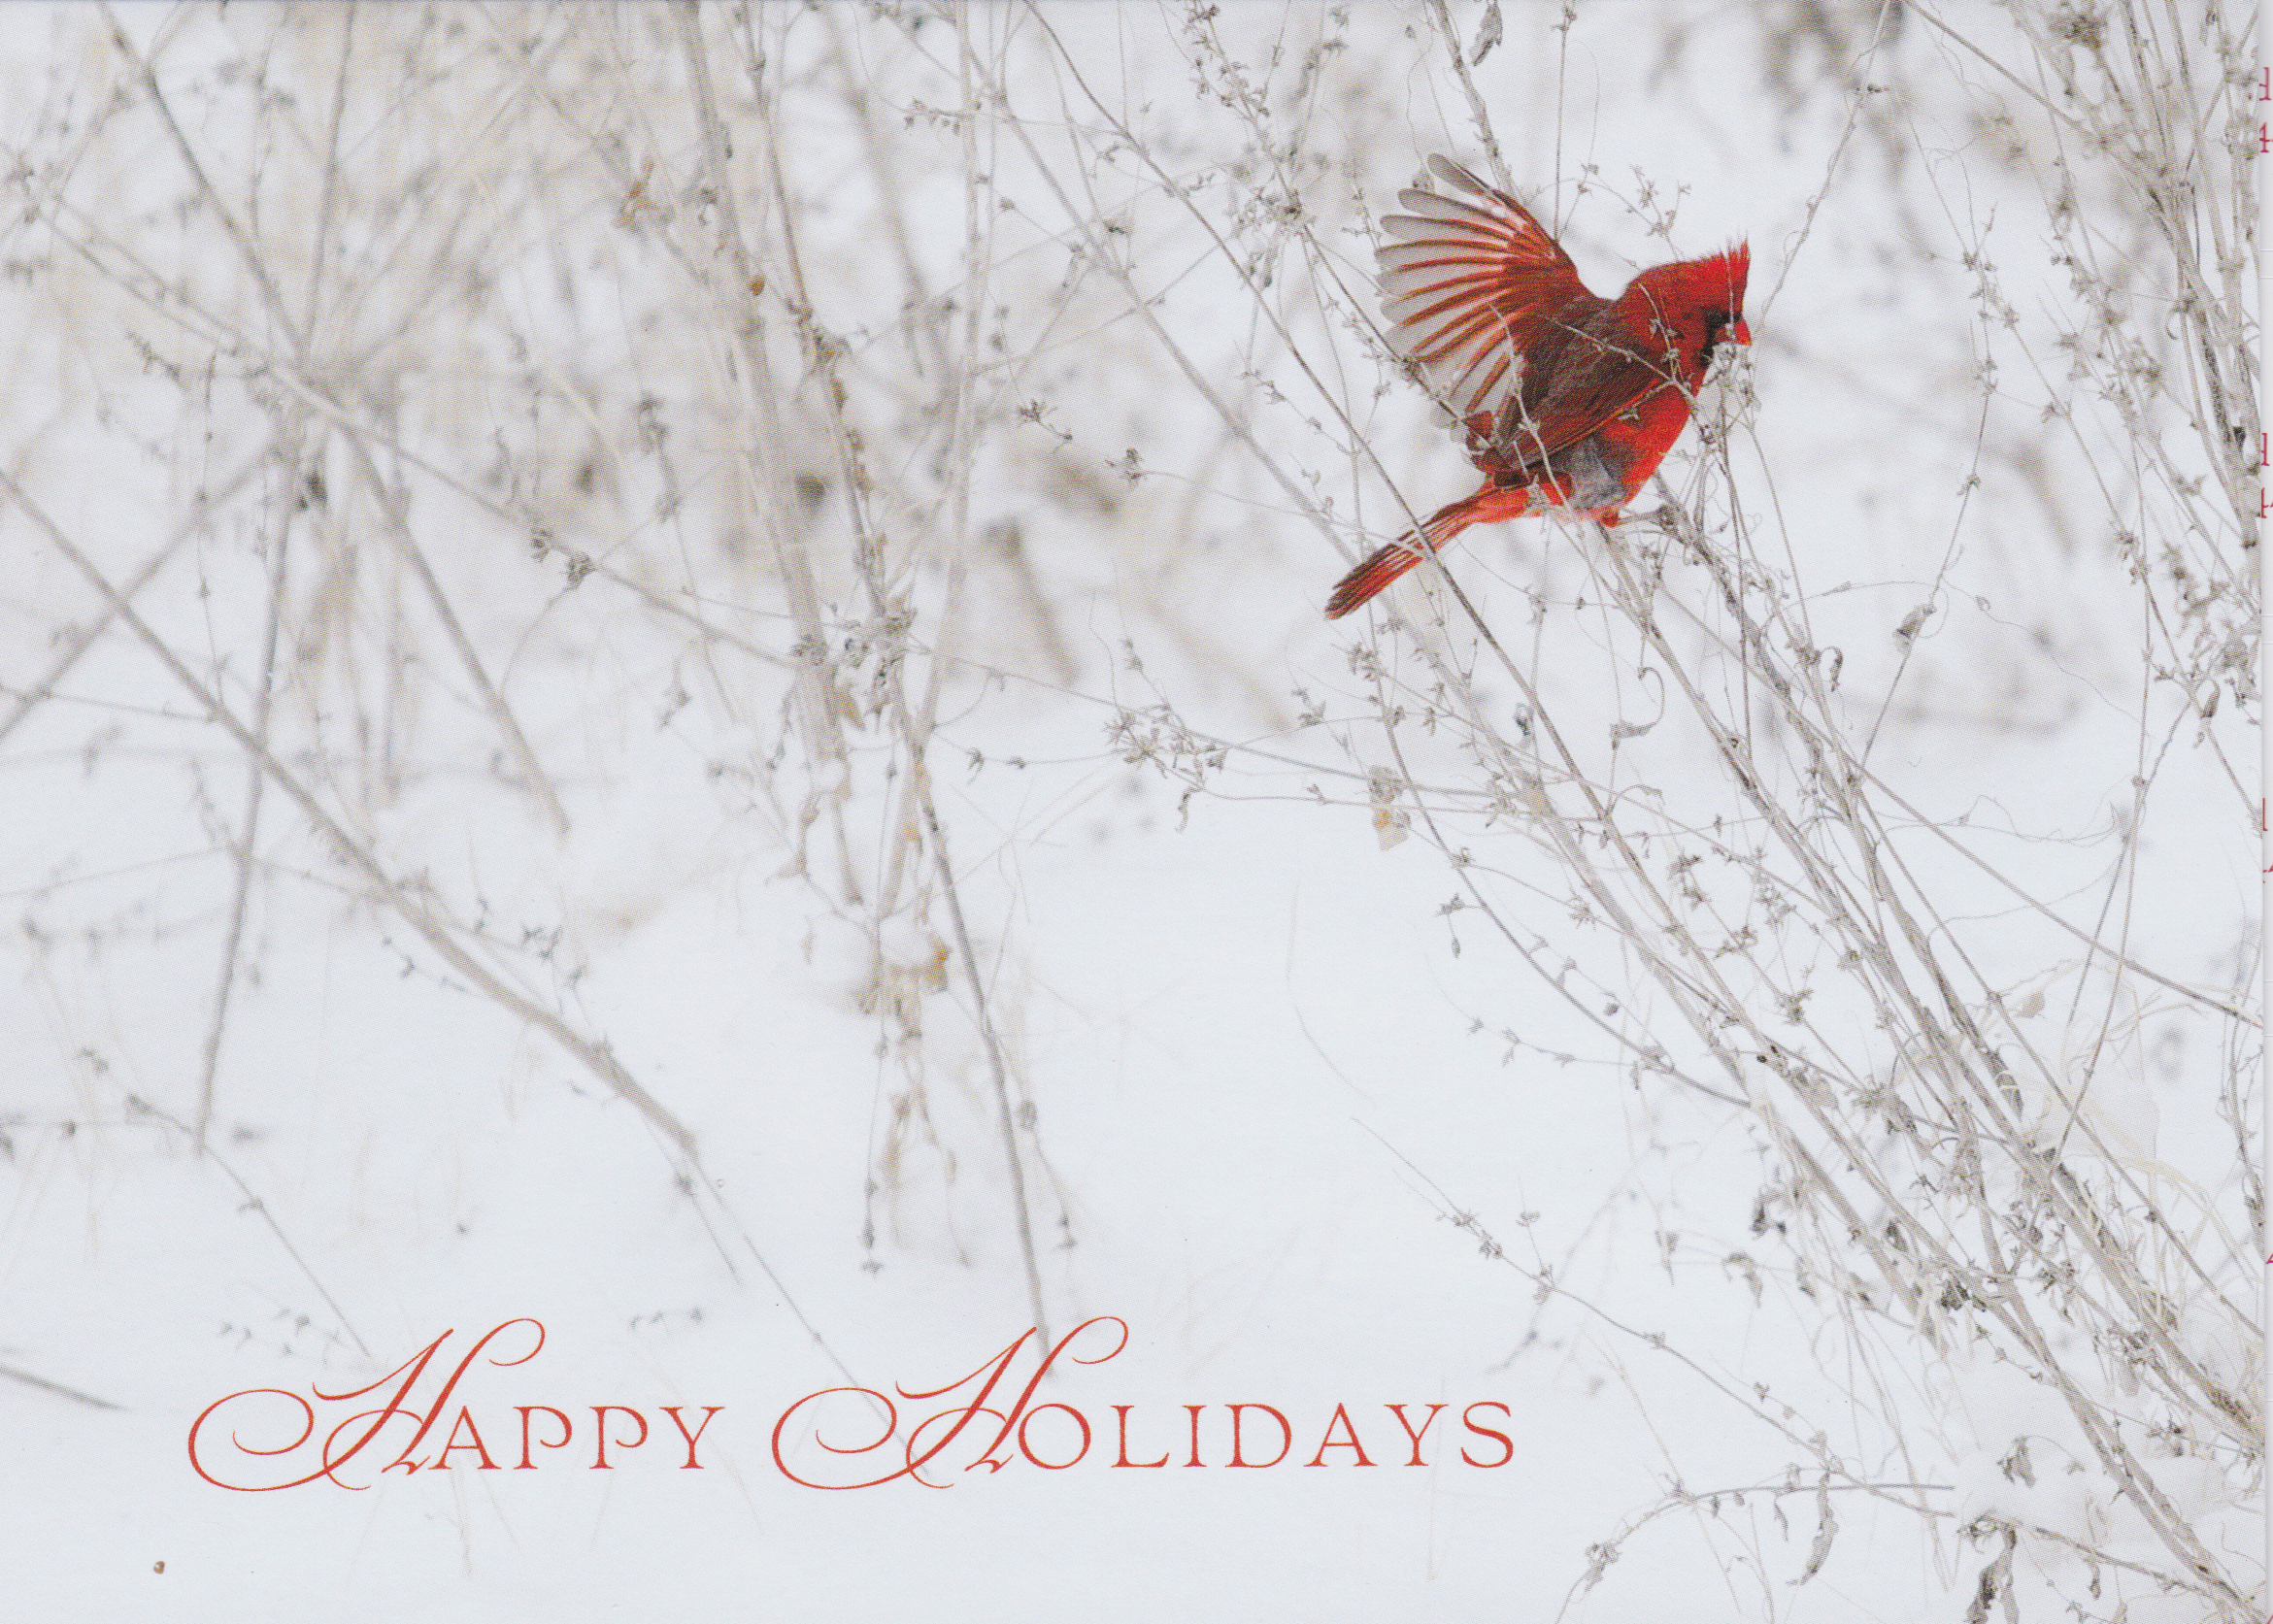 Remembering Jackie. She always loved the cardinals in our yard and at the feeders.